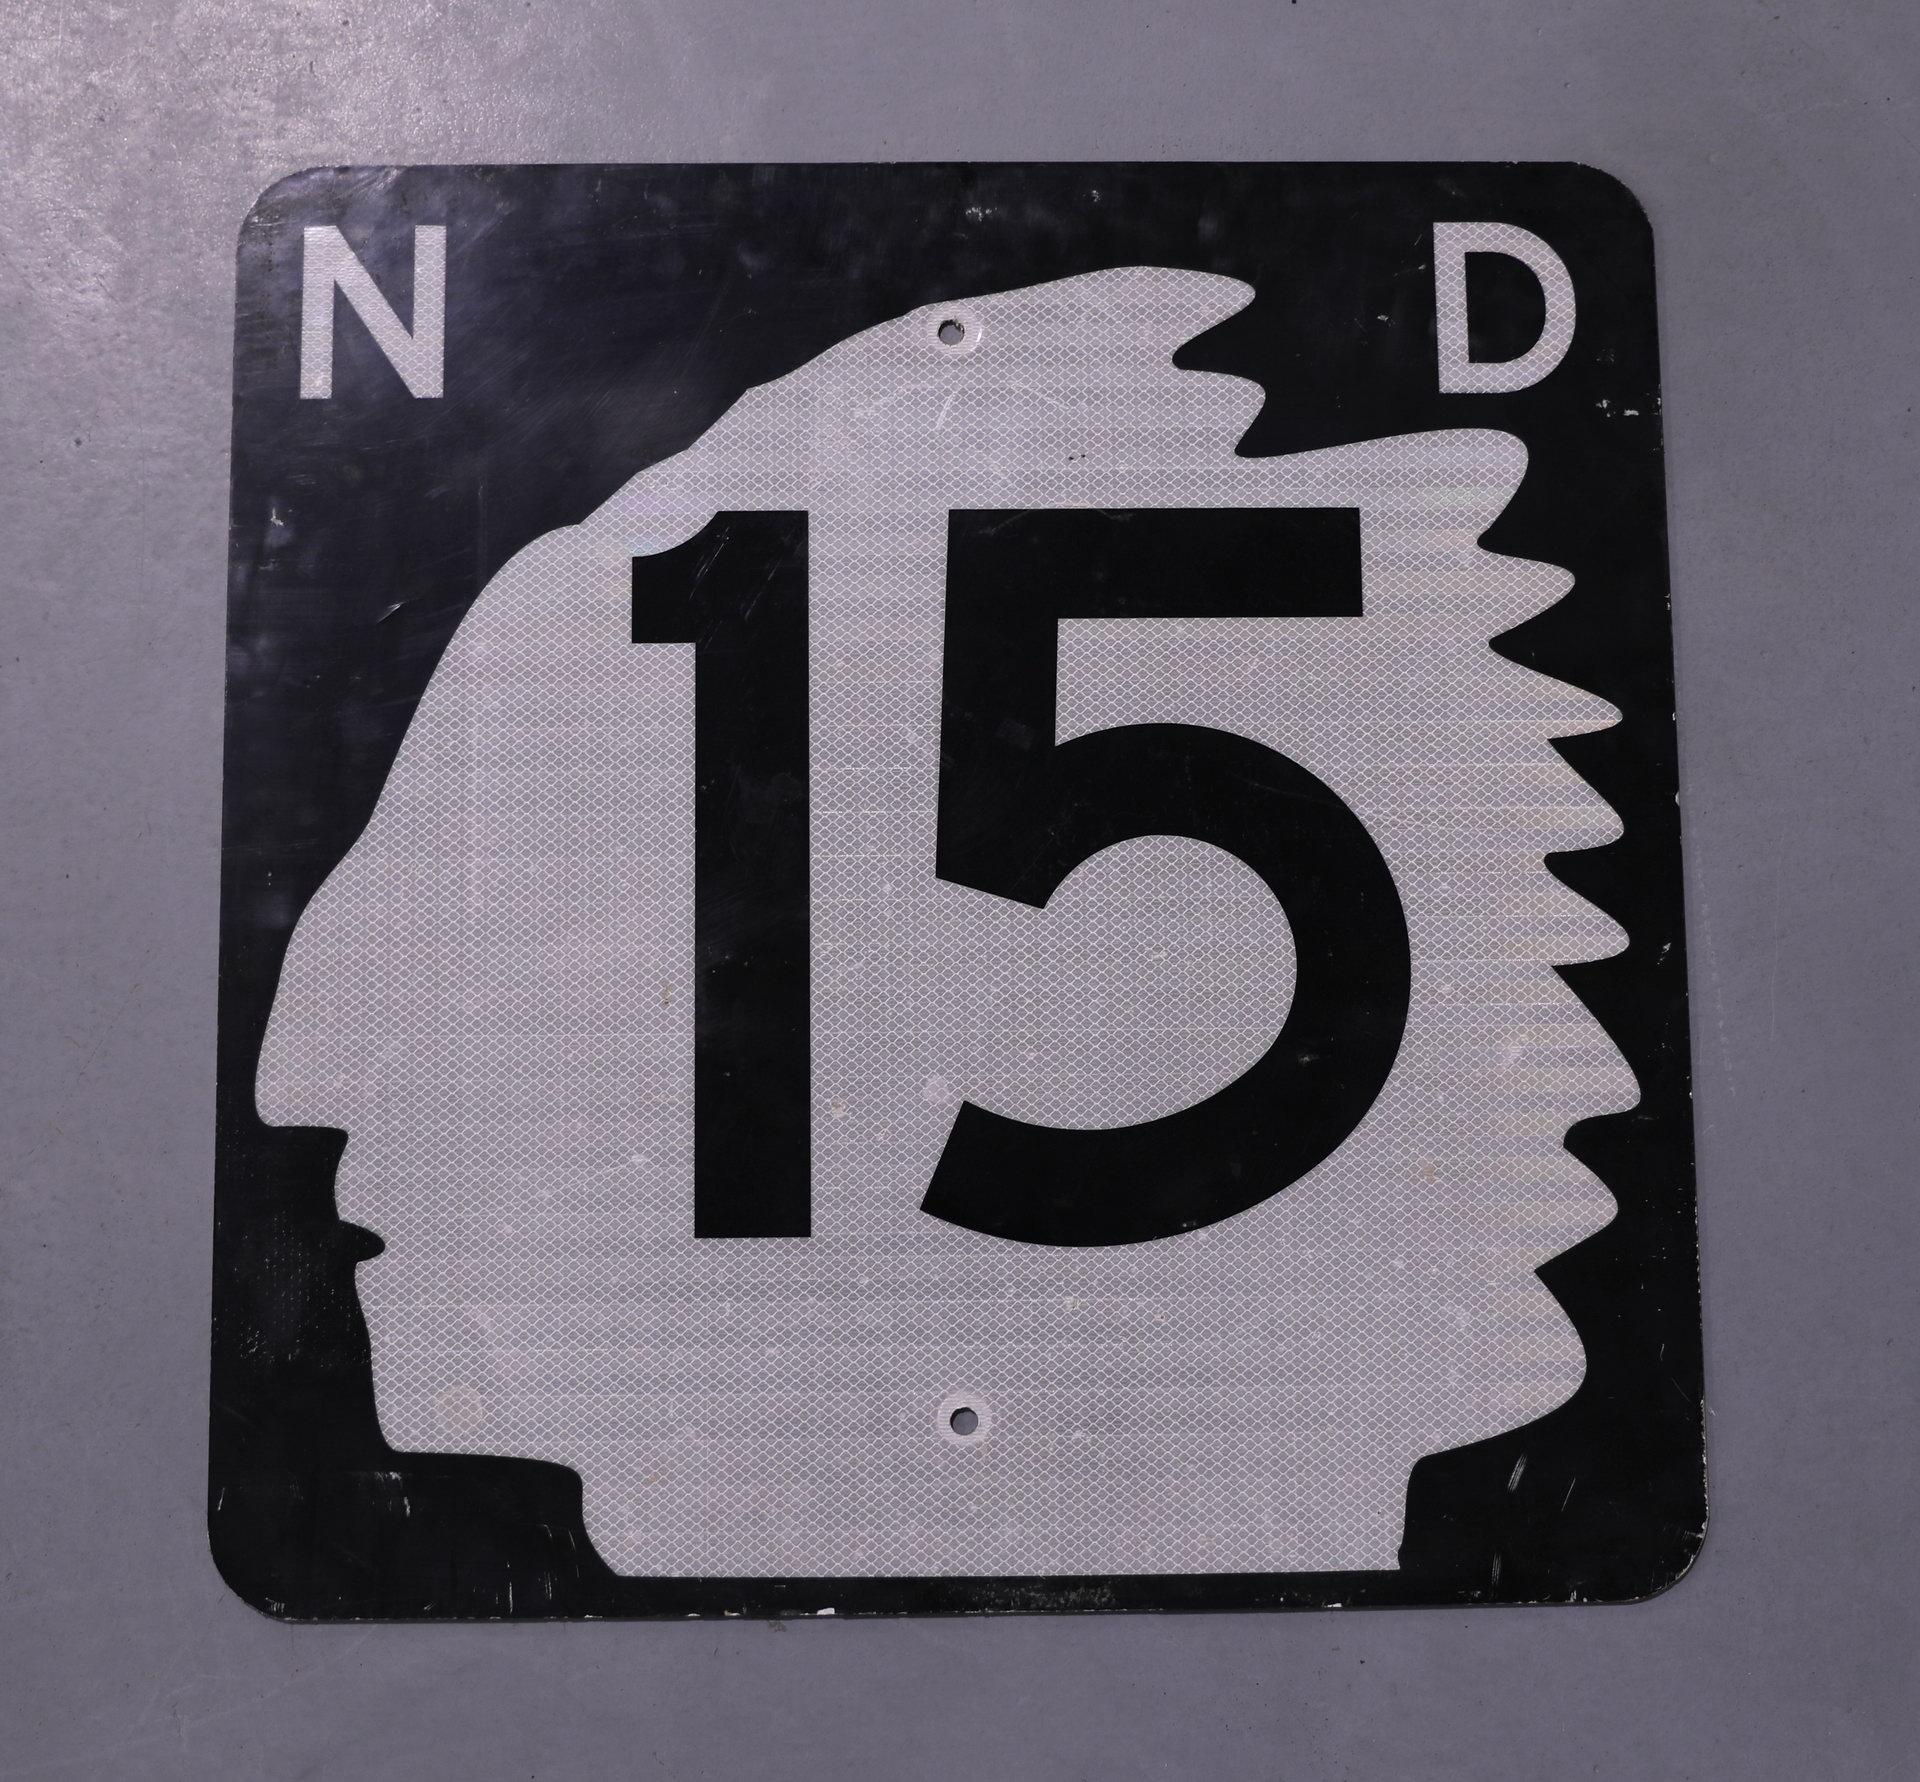 North Dakota Reflective Indian Road Sign Highway 15